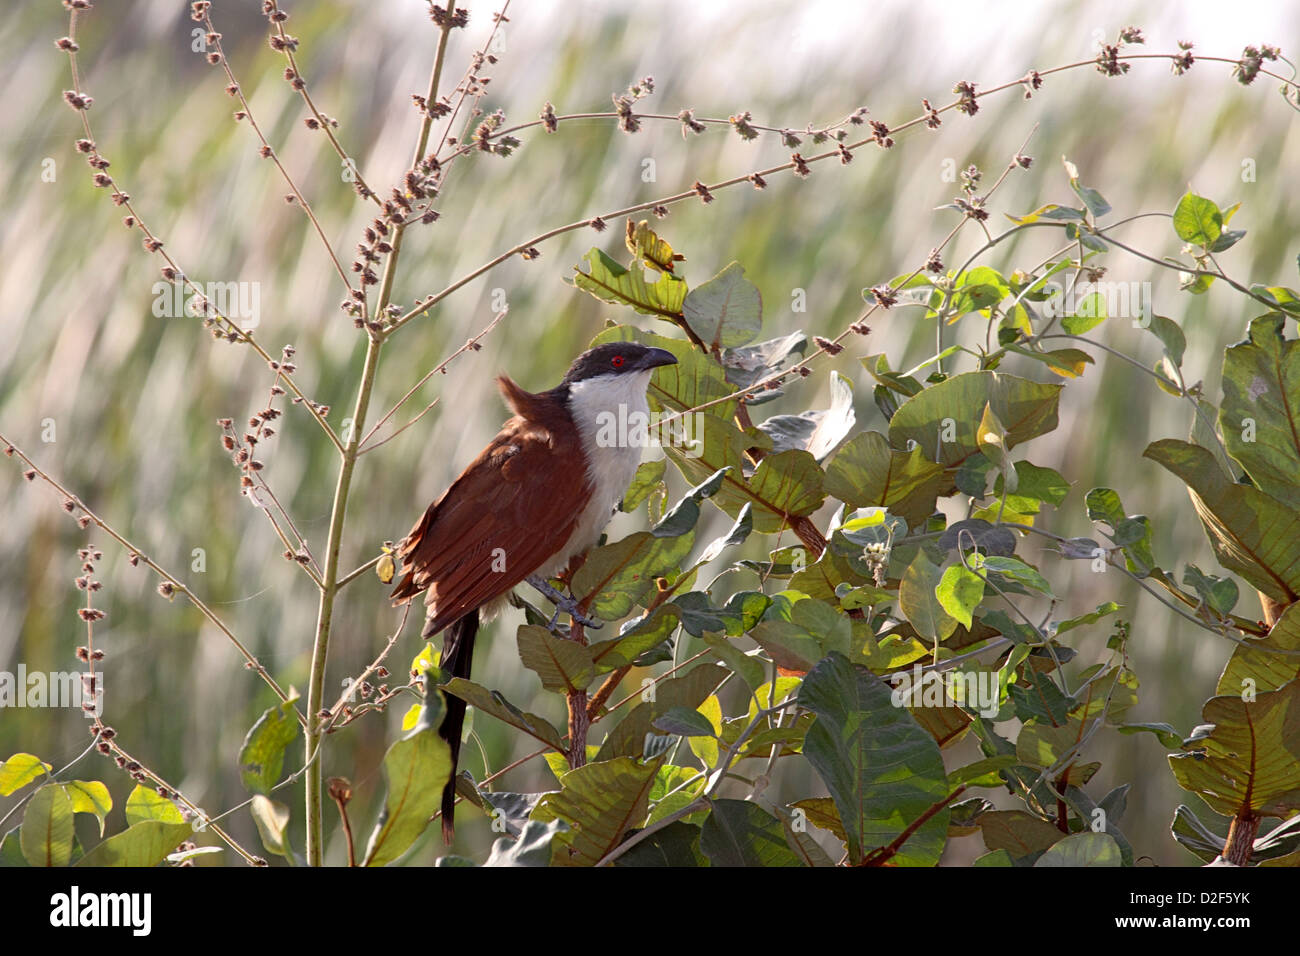 Senegal coucal in tree in The Gambia - Stock Image